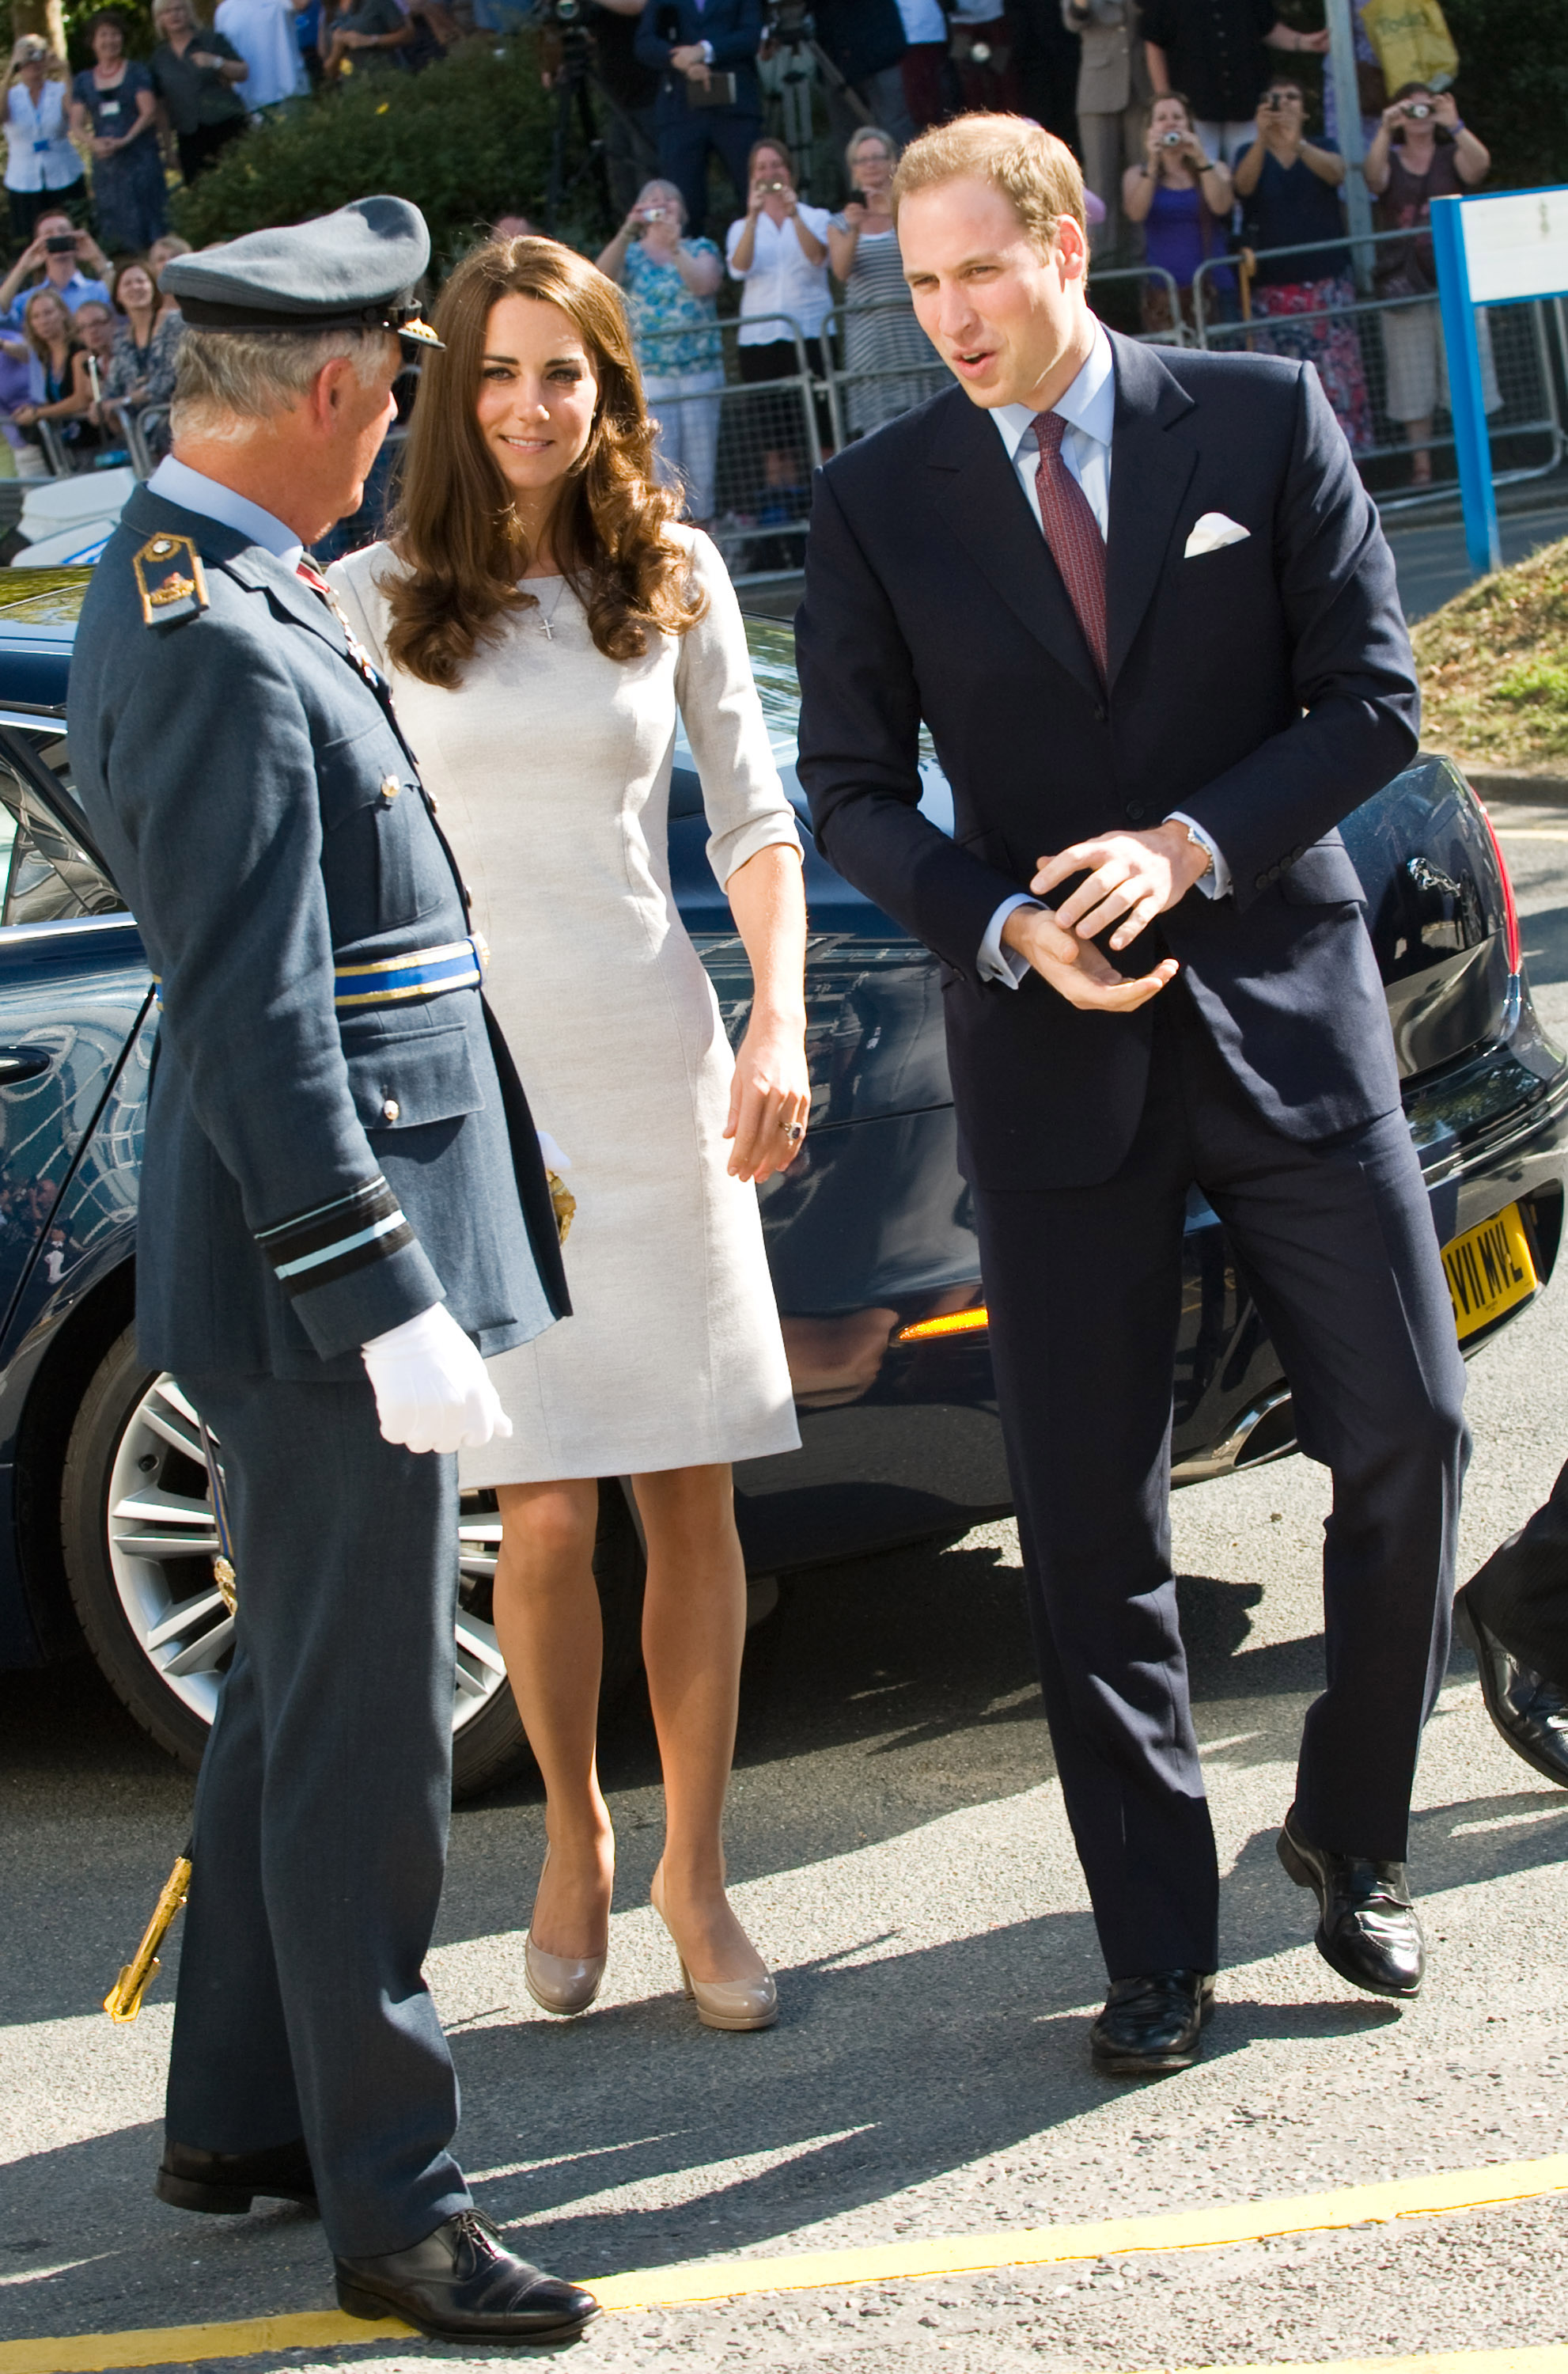 Kate Middleton and Prince William were welcomed to the Royal Marsden Hospital in London.